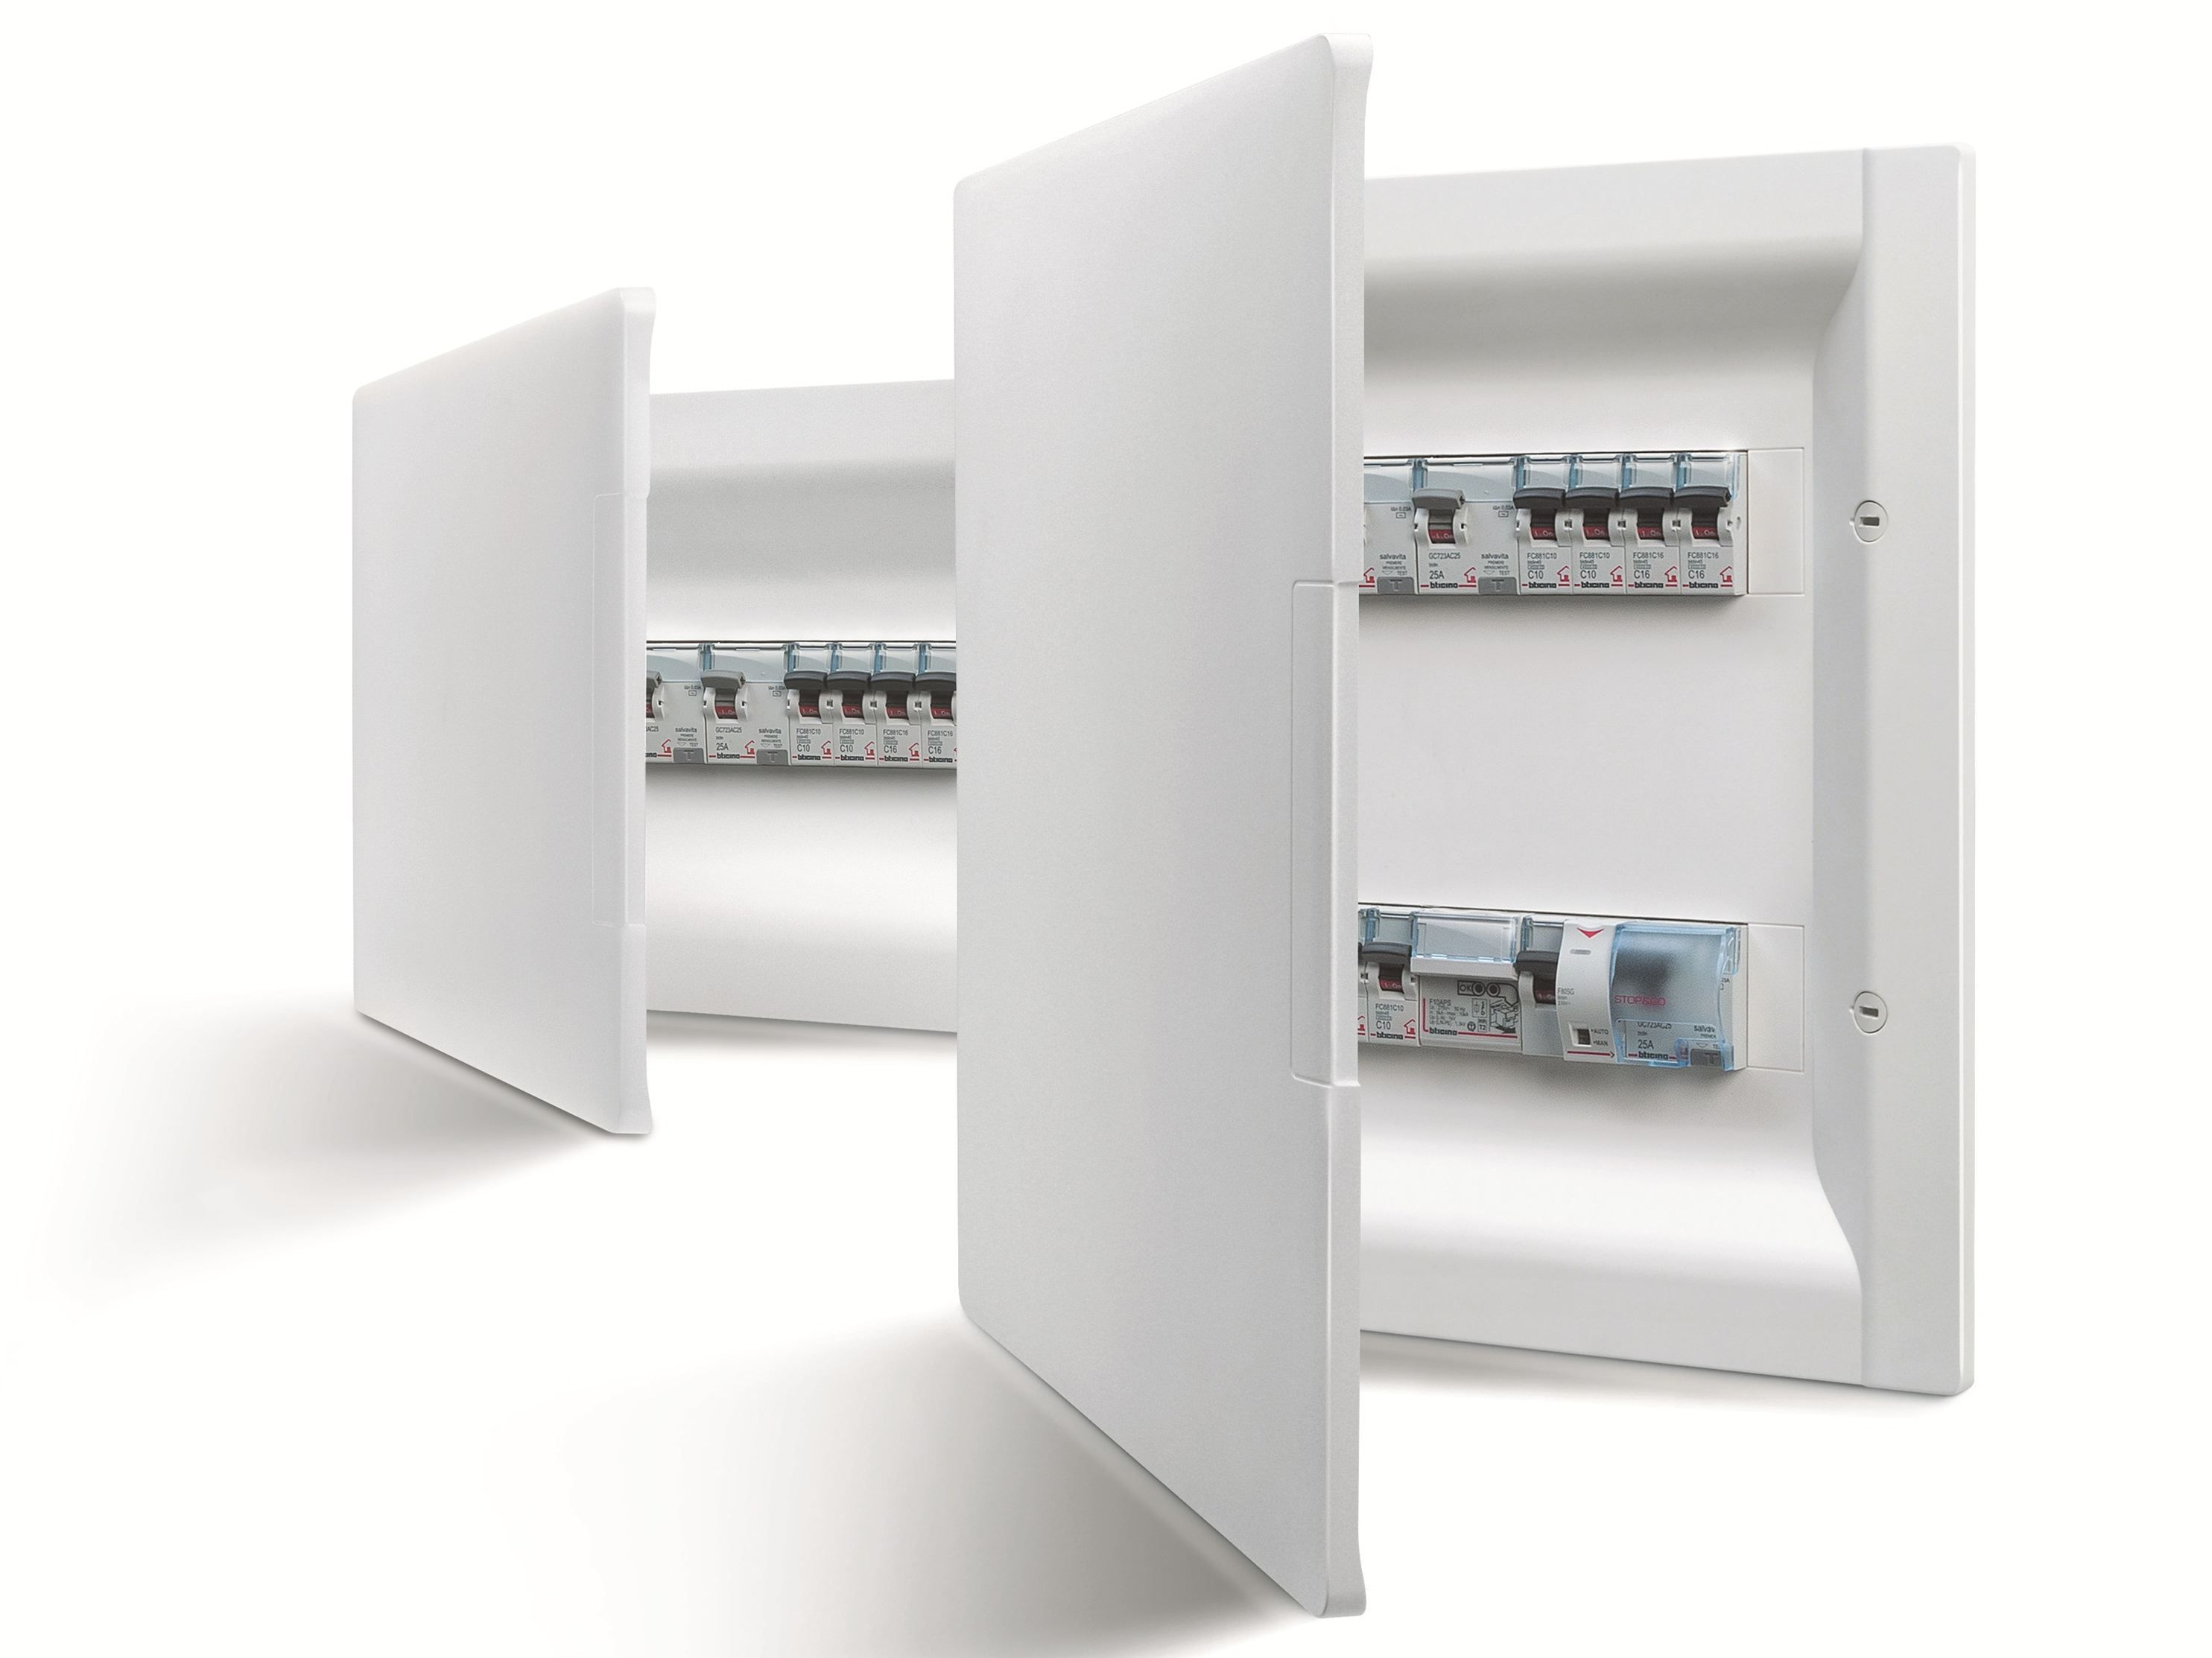 Electrical Switchboard Linea Space Bticino Home Automation System Locker Storage Home